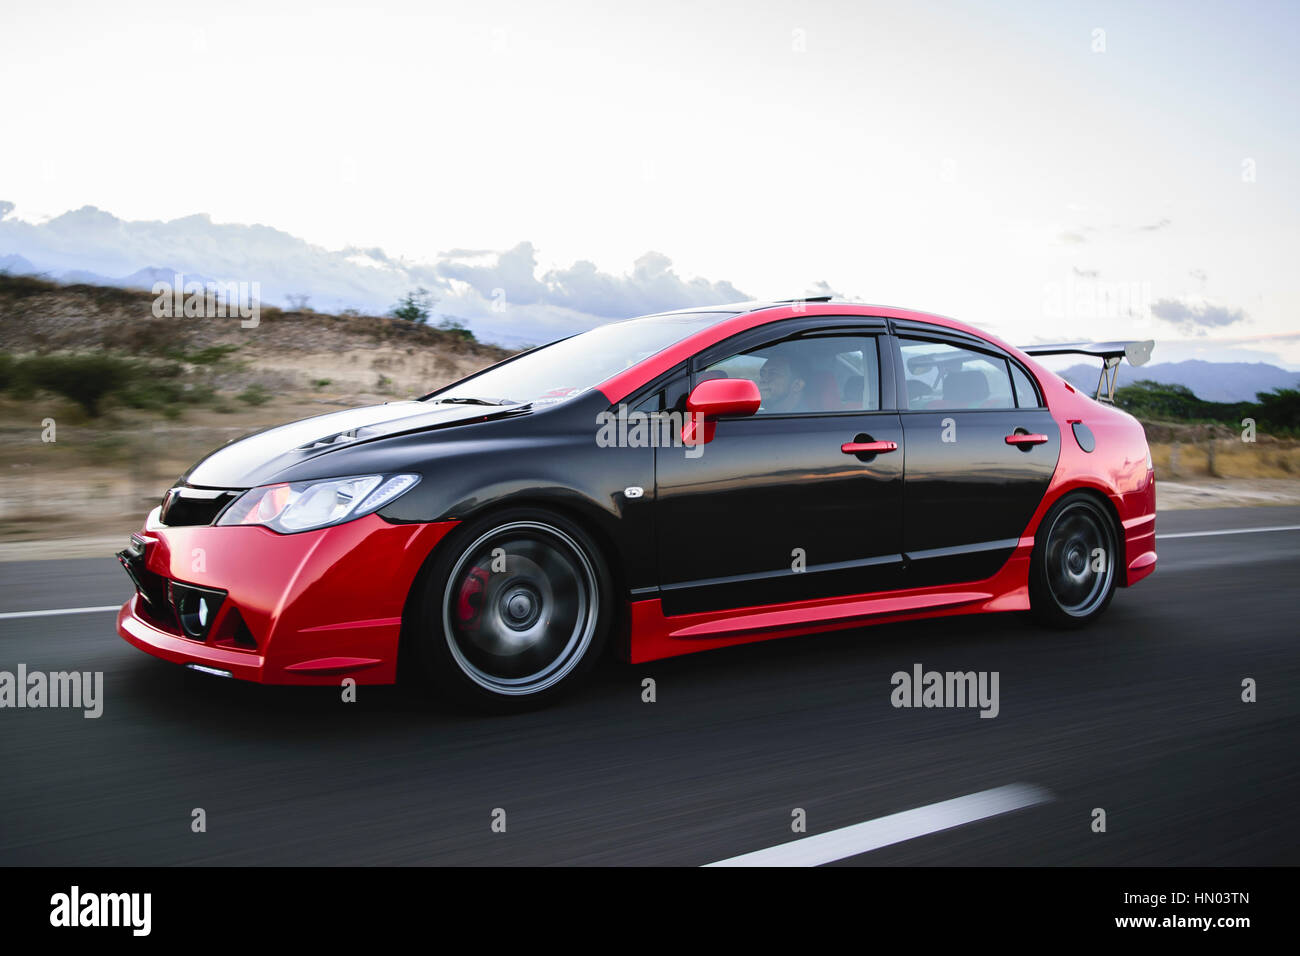 All Types civic si mugen for sale : Honda Civic si RR with Carbon Fiber Doors and hood, best example ...